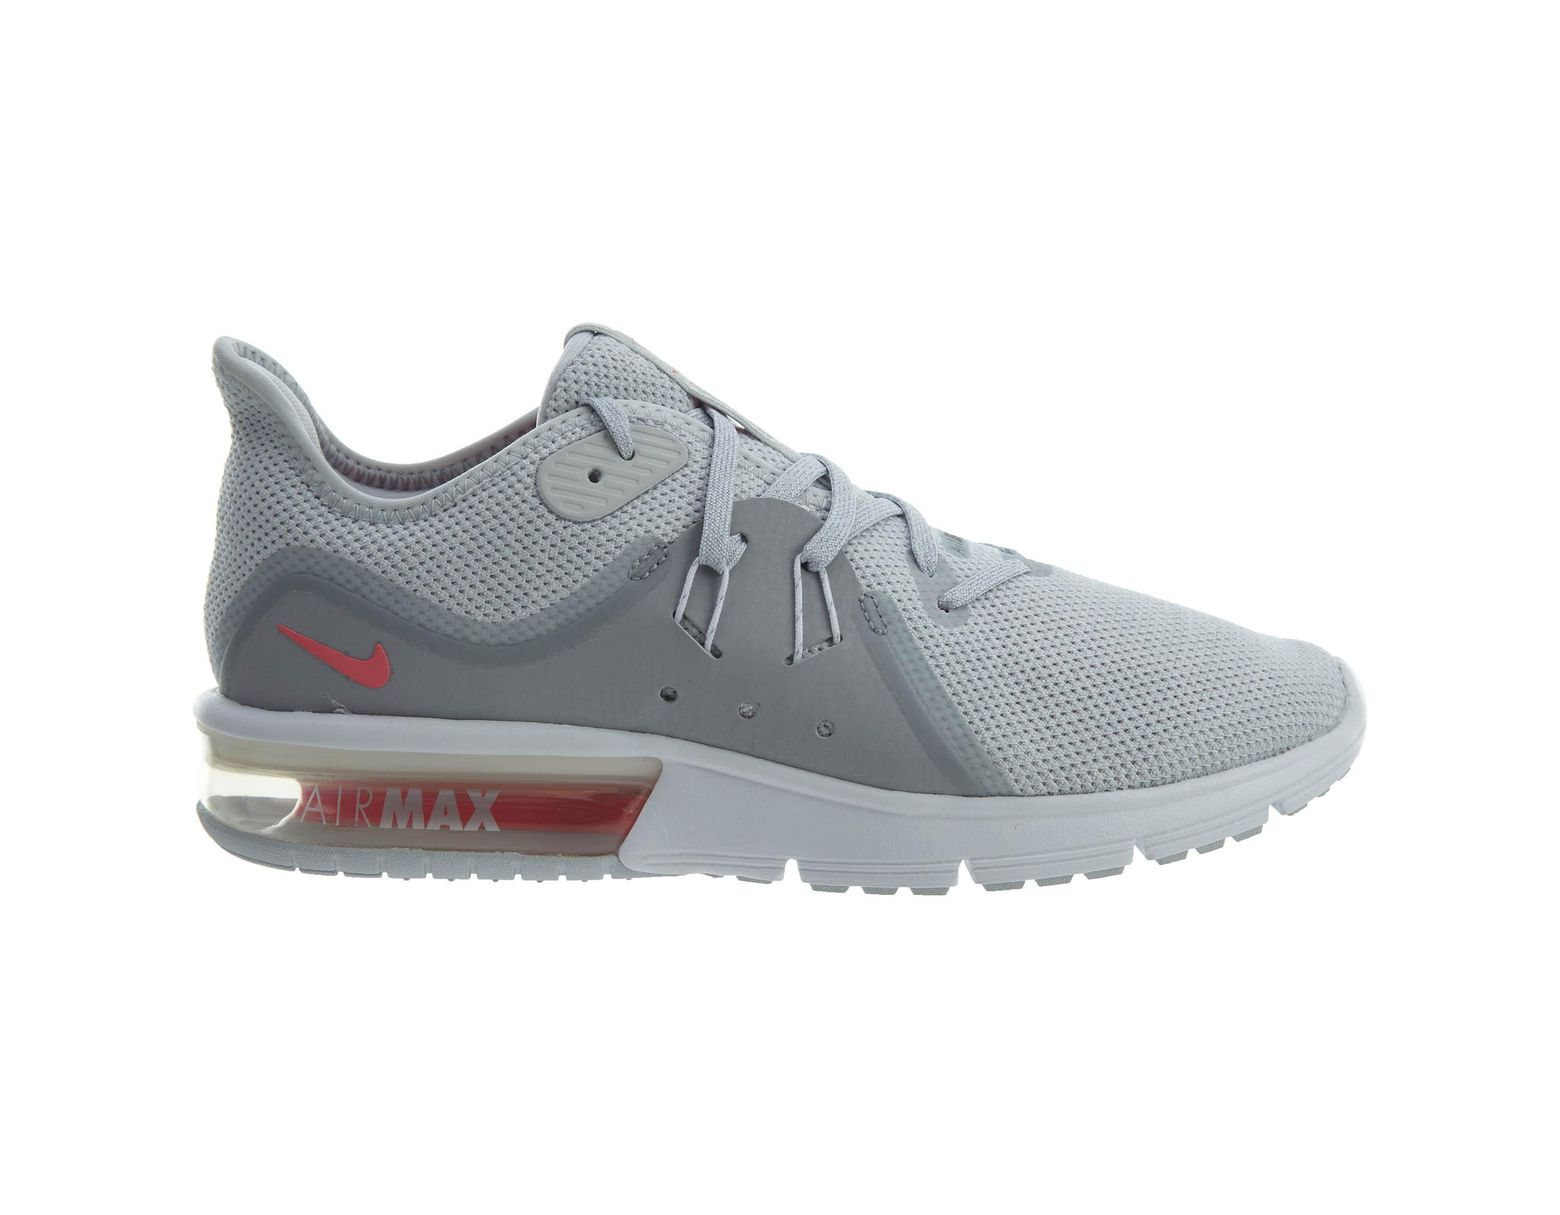 Nike Air Max 2015 Pure Platinum Cool Grey white (w) in Gray